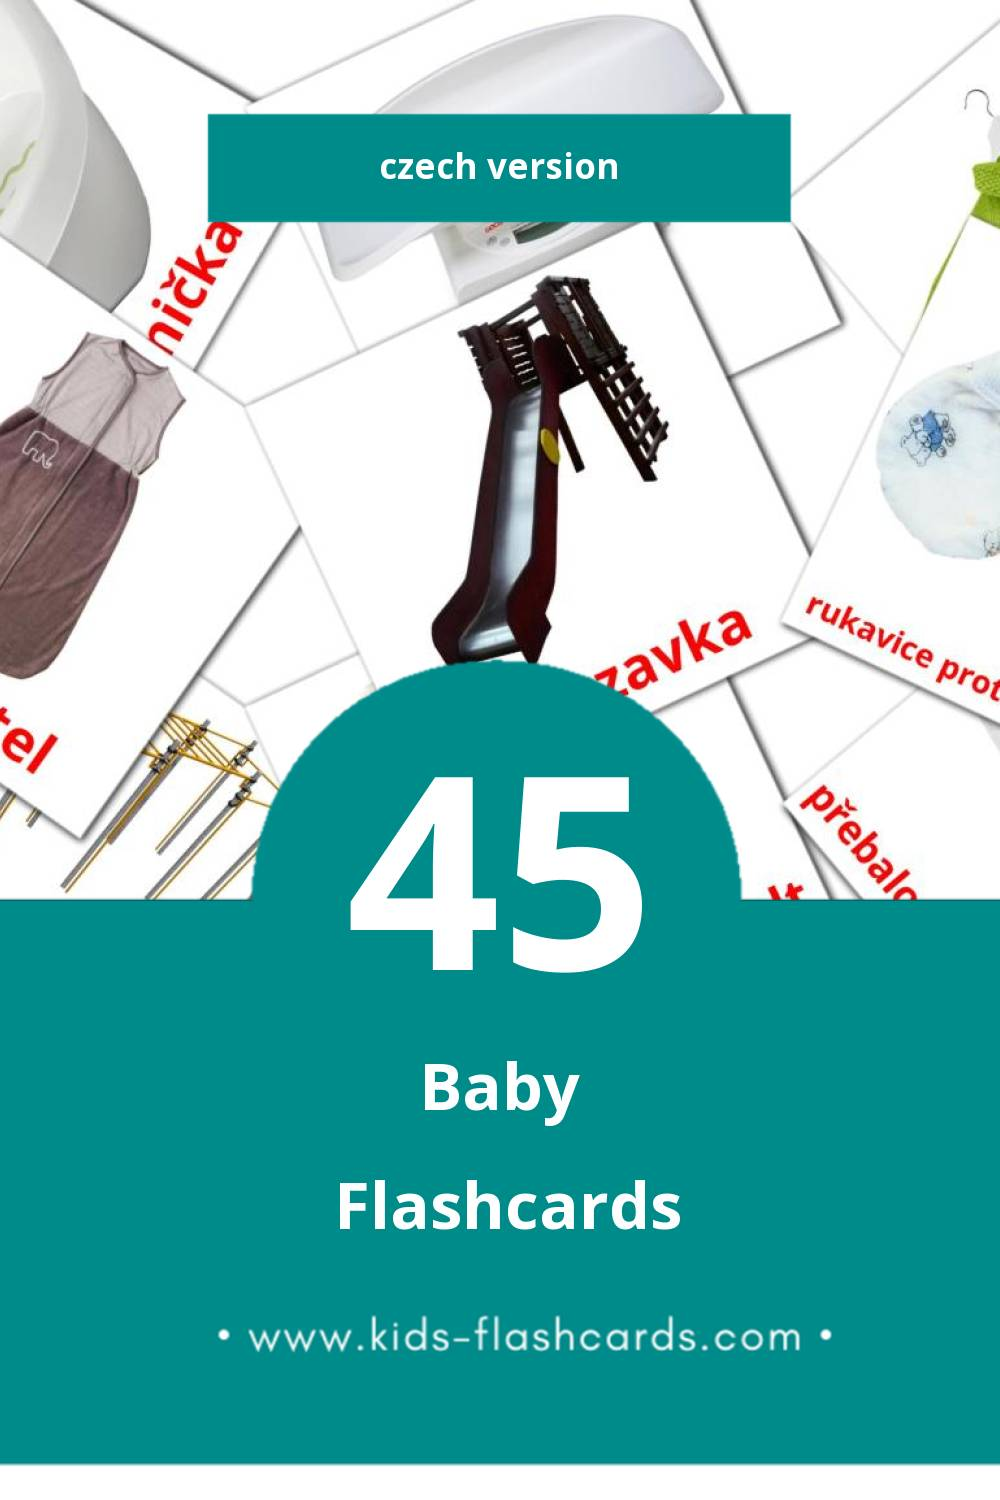 Visual Dítě Flashcards for Toddlers (32 cards in Czech)